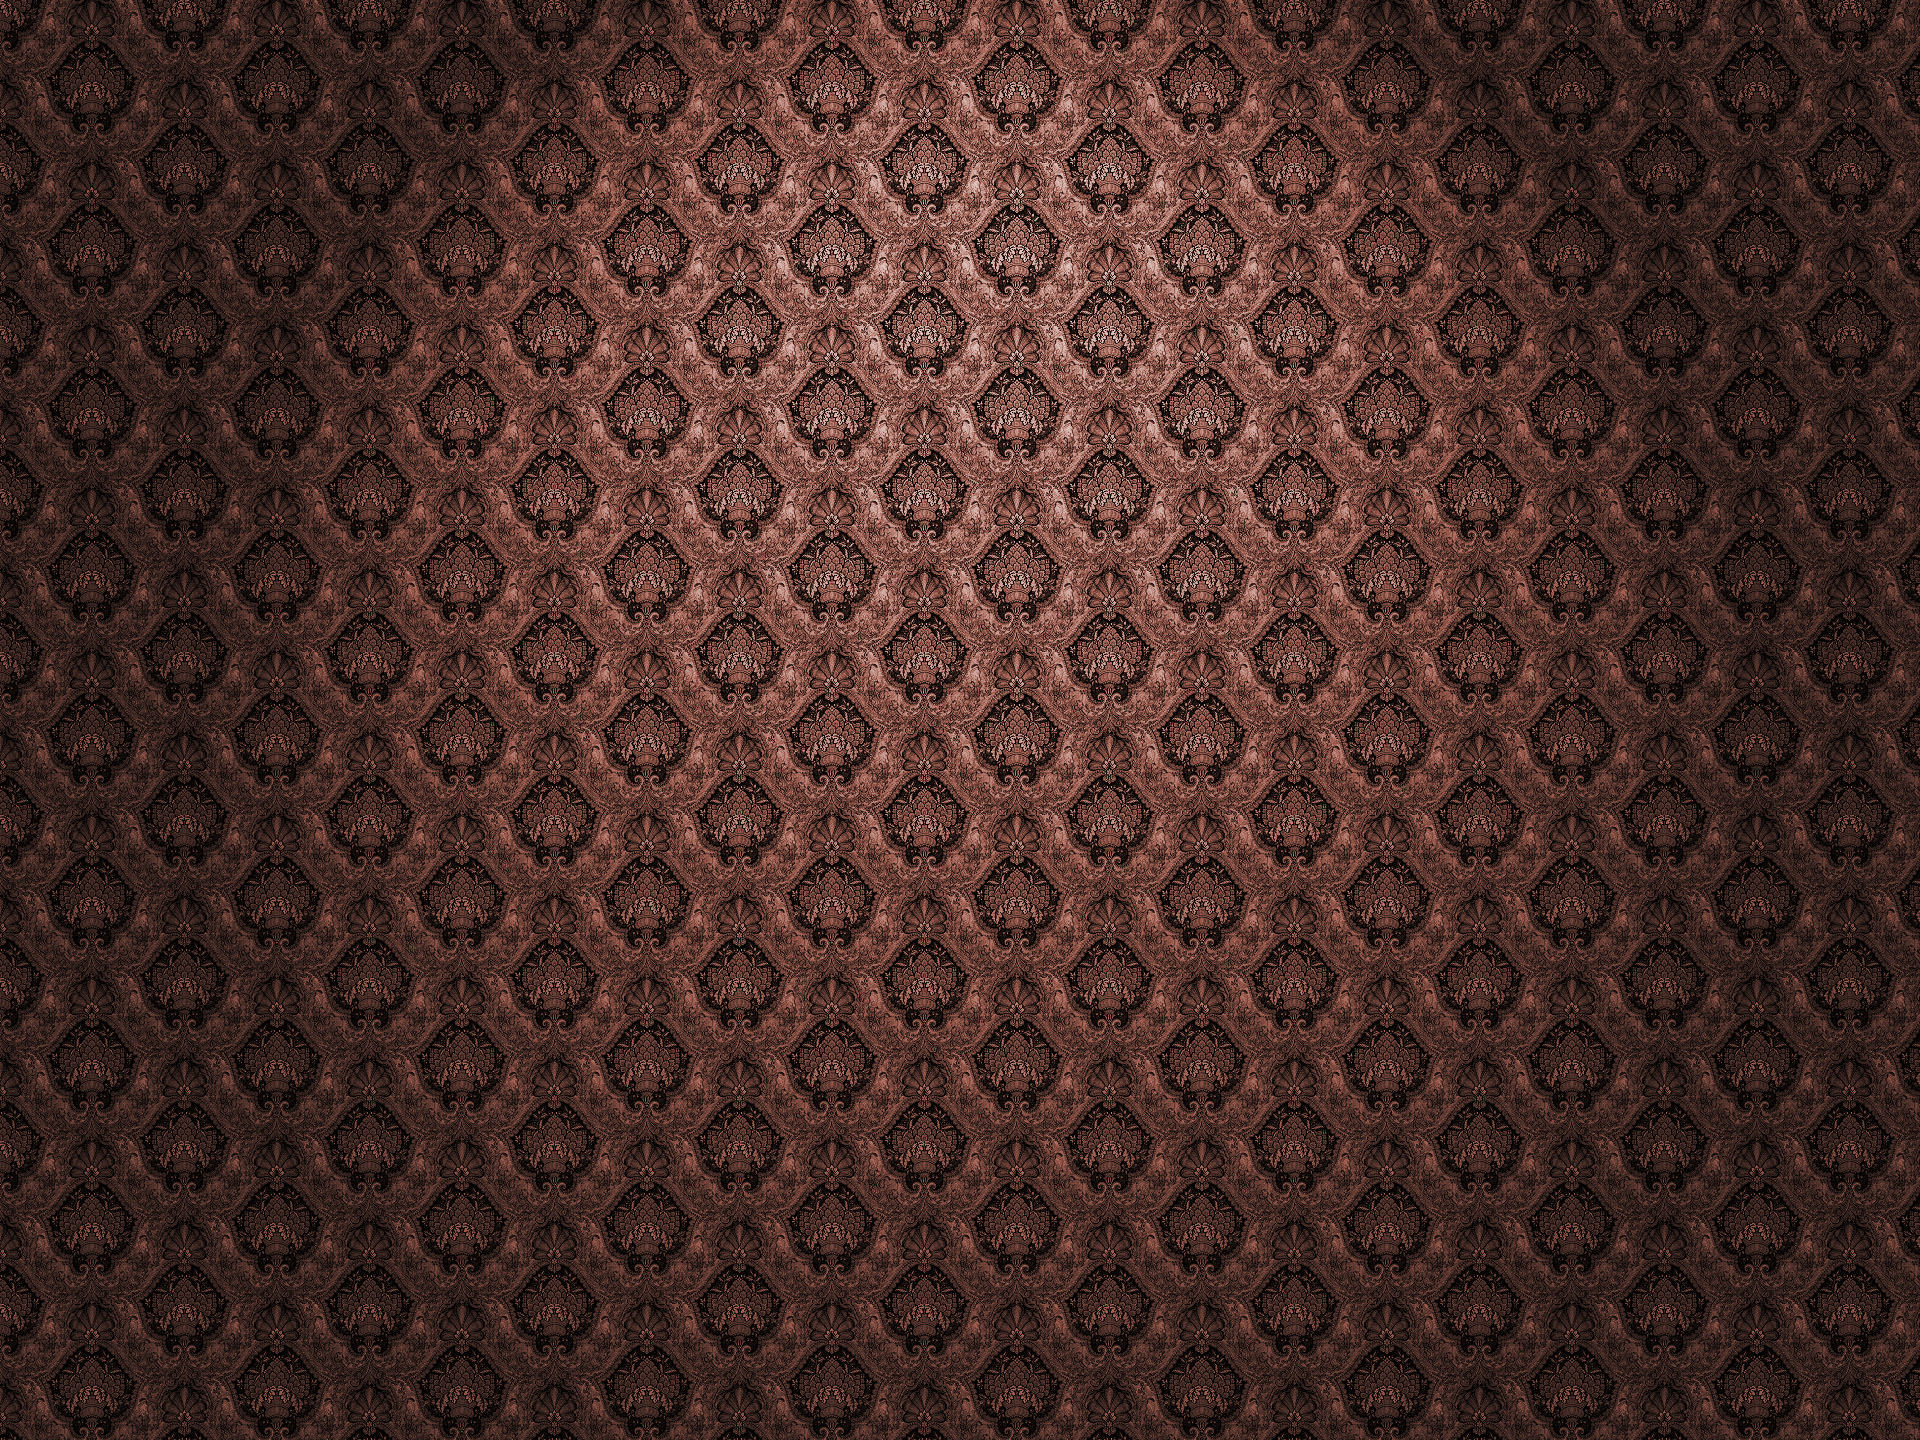 Vintage Patterns Wallpaper 1920x1440